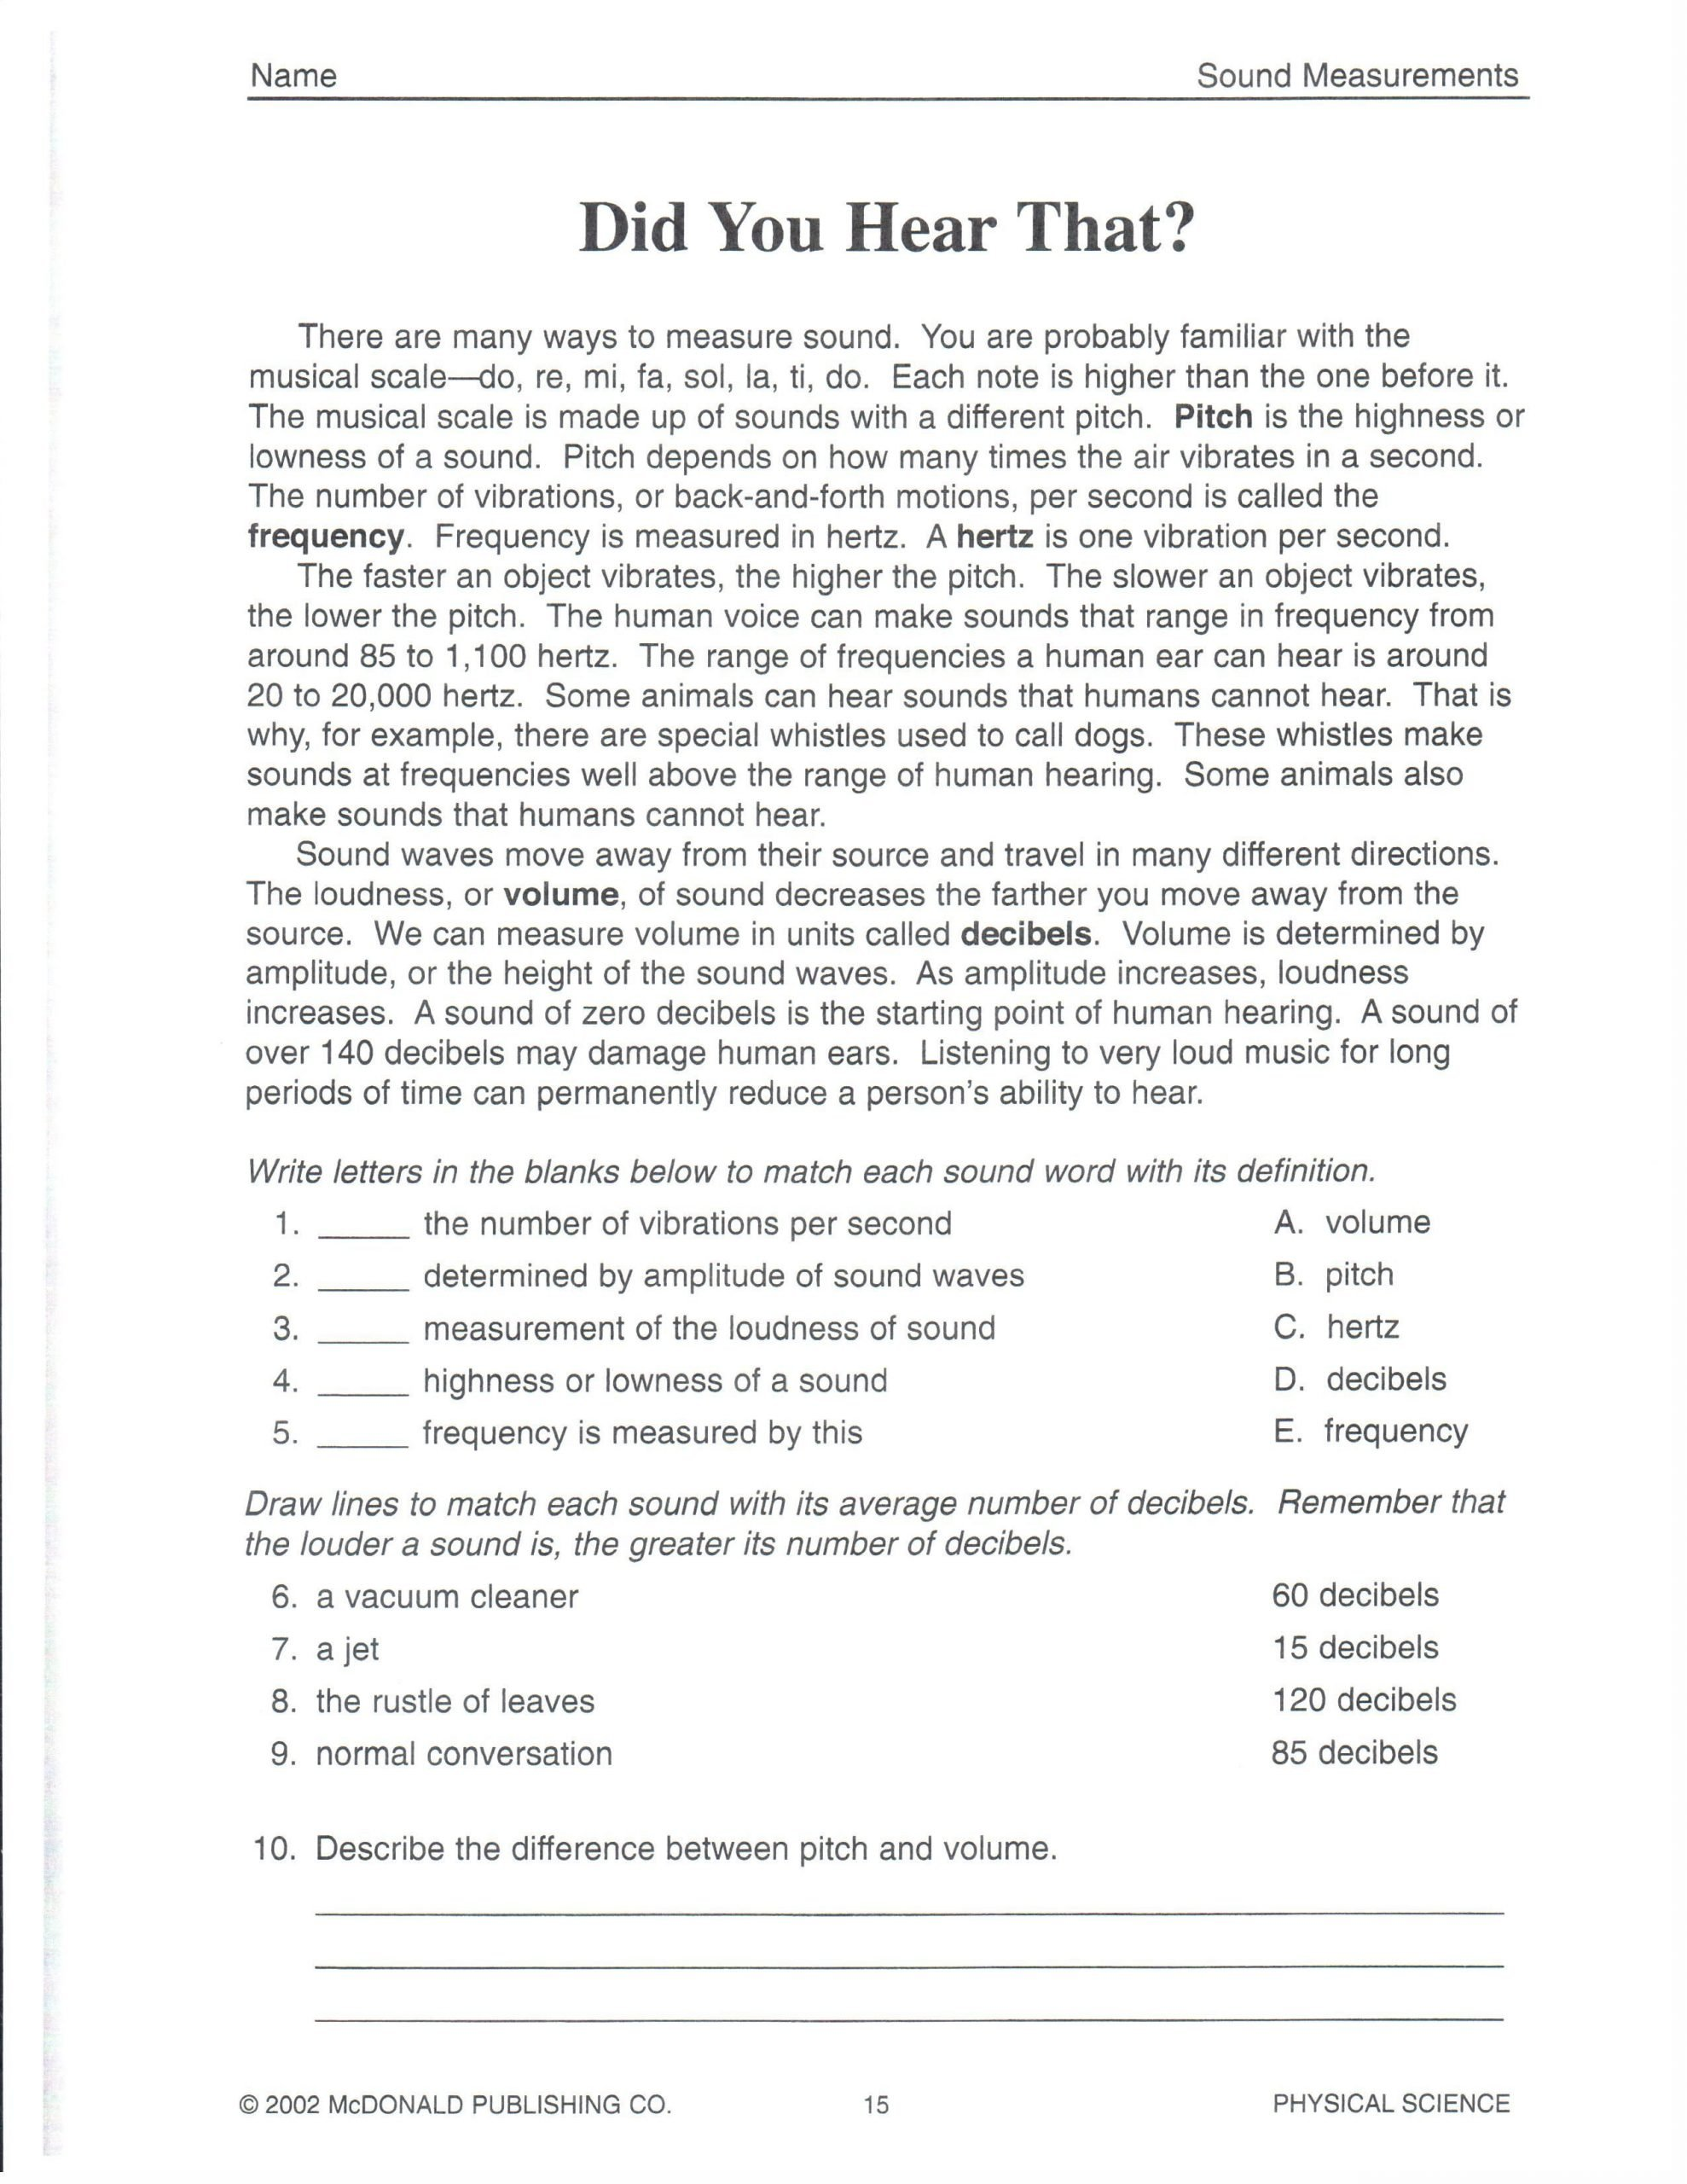 7th Grade Science Worksheets Physical Science Did You Hear that 101roxm 2 550—3 300